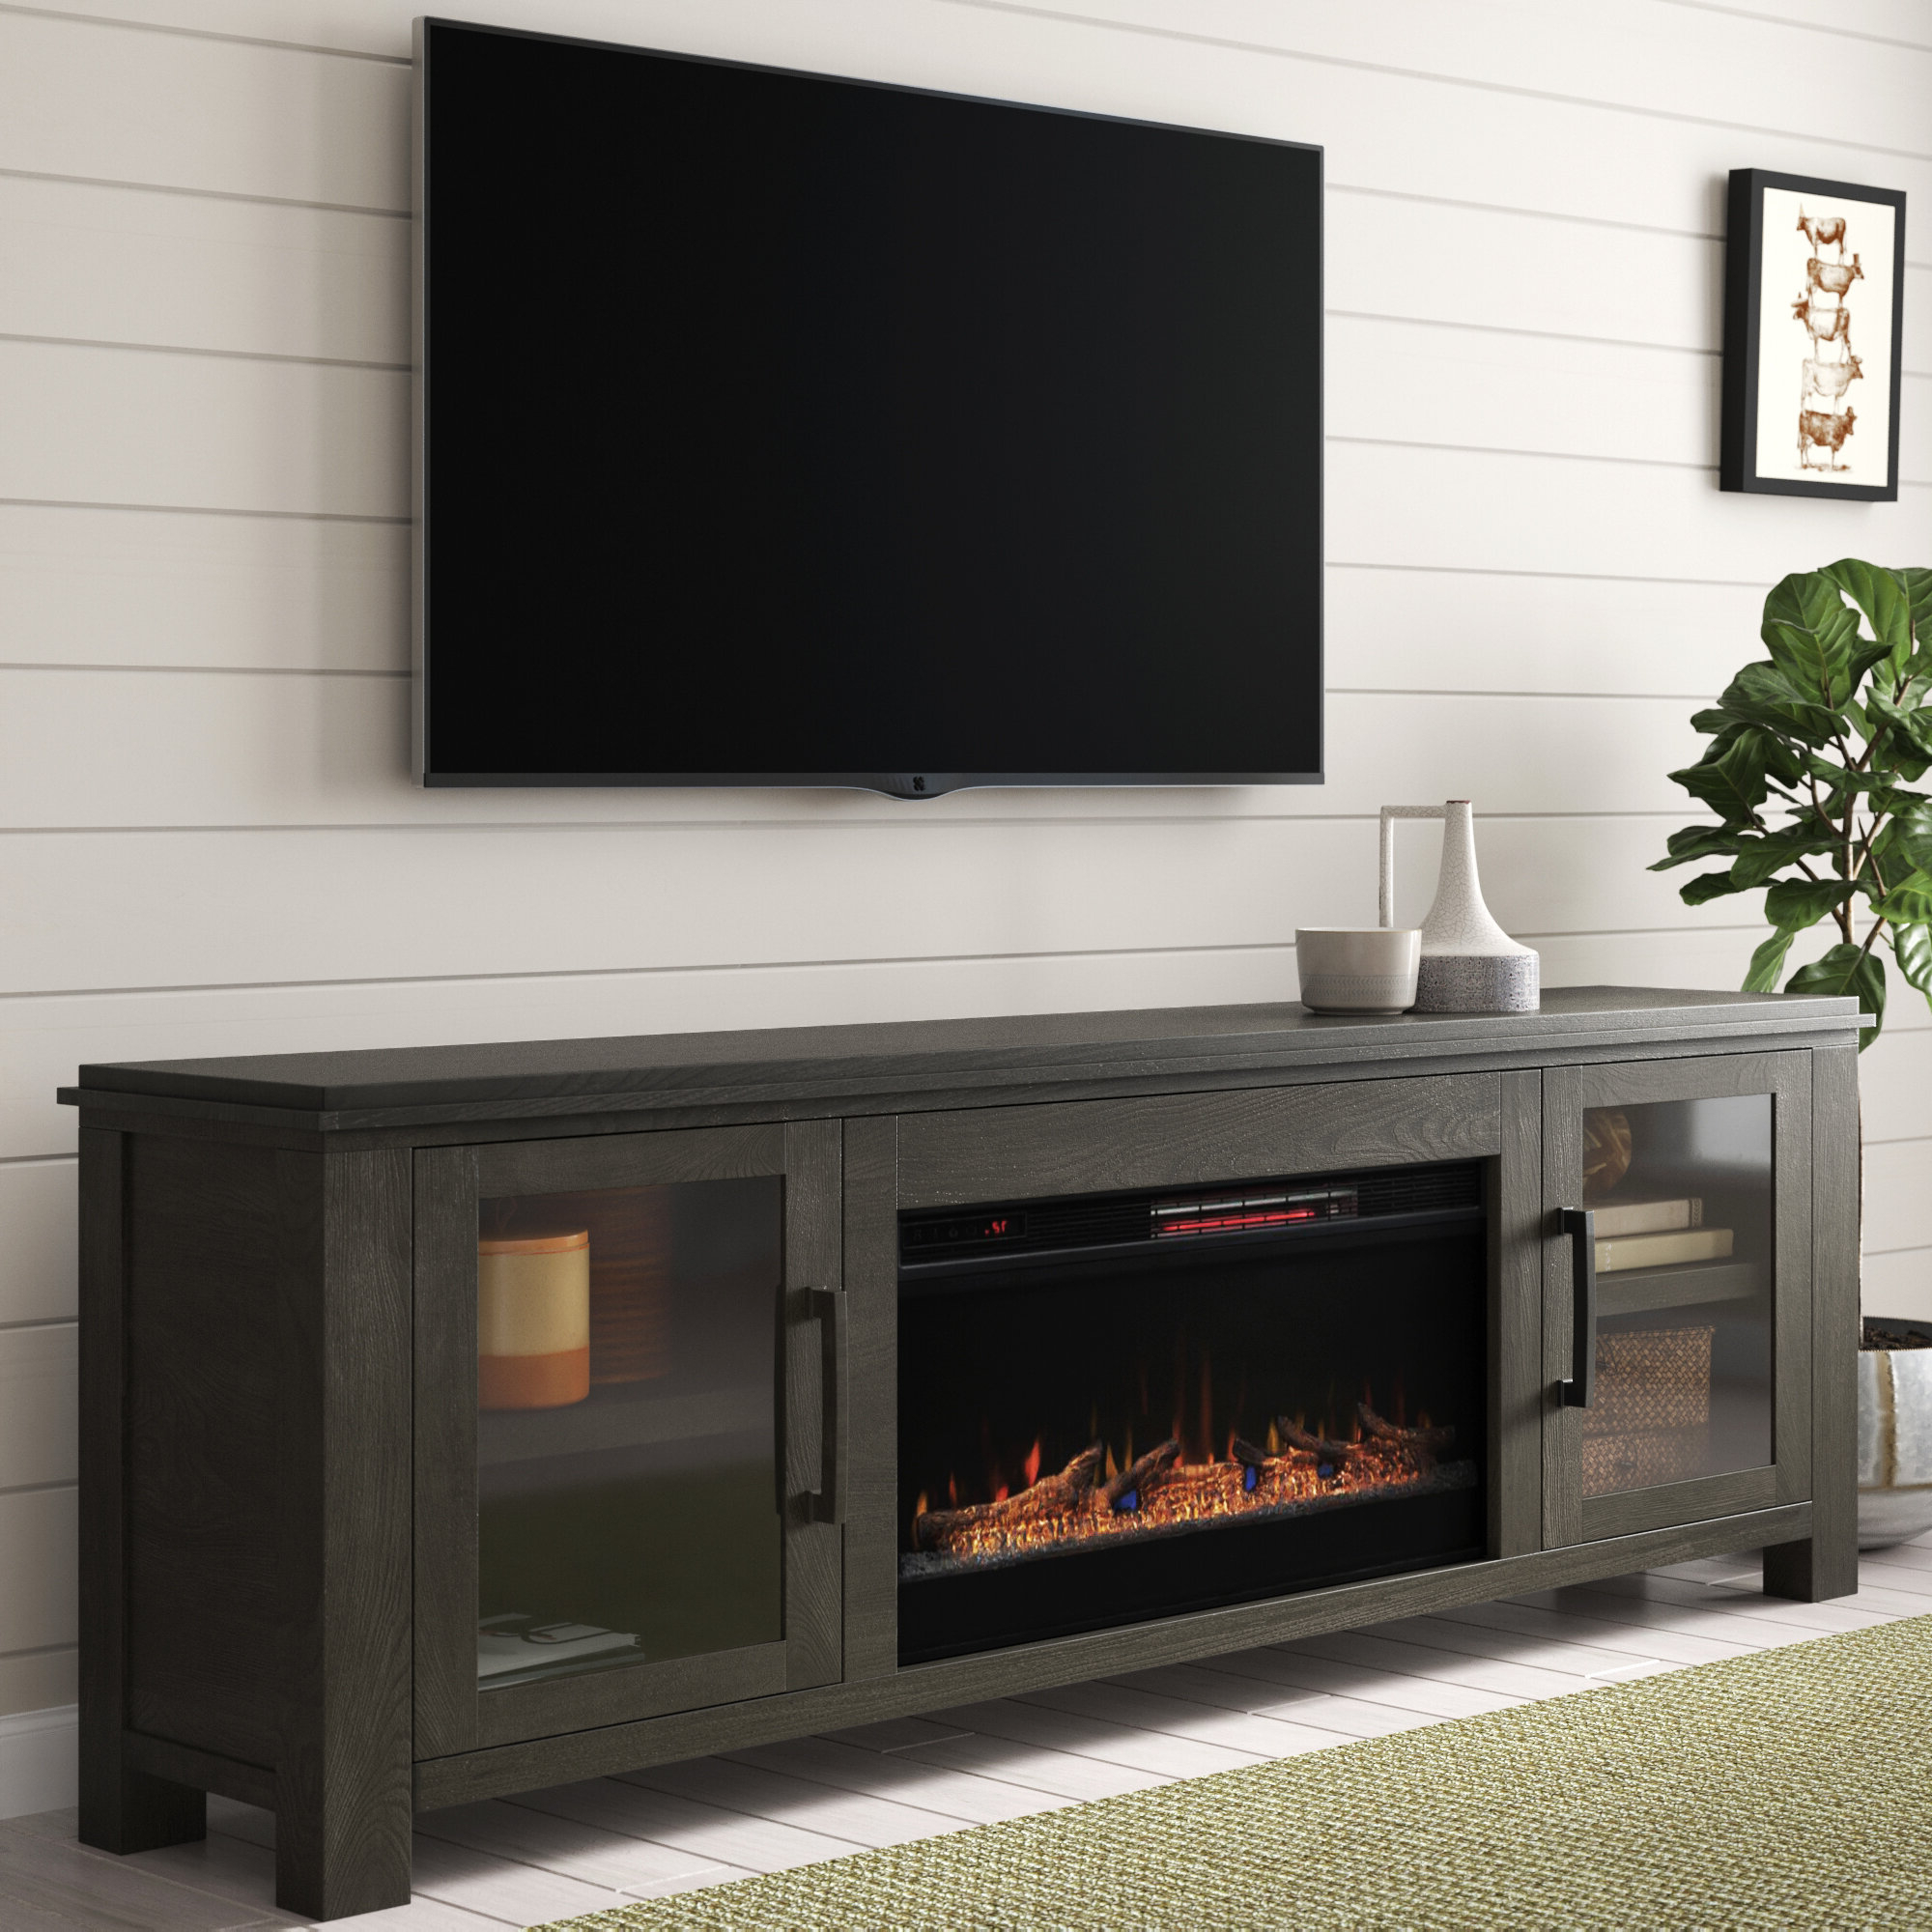 Gracie Oaks Tv Stands & Entertainment Centers You'll Love In Regarding Eutropios Tv Stand With Electric Fireplace Included (View 5 of 20)